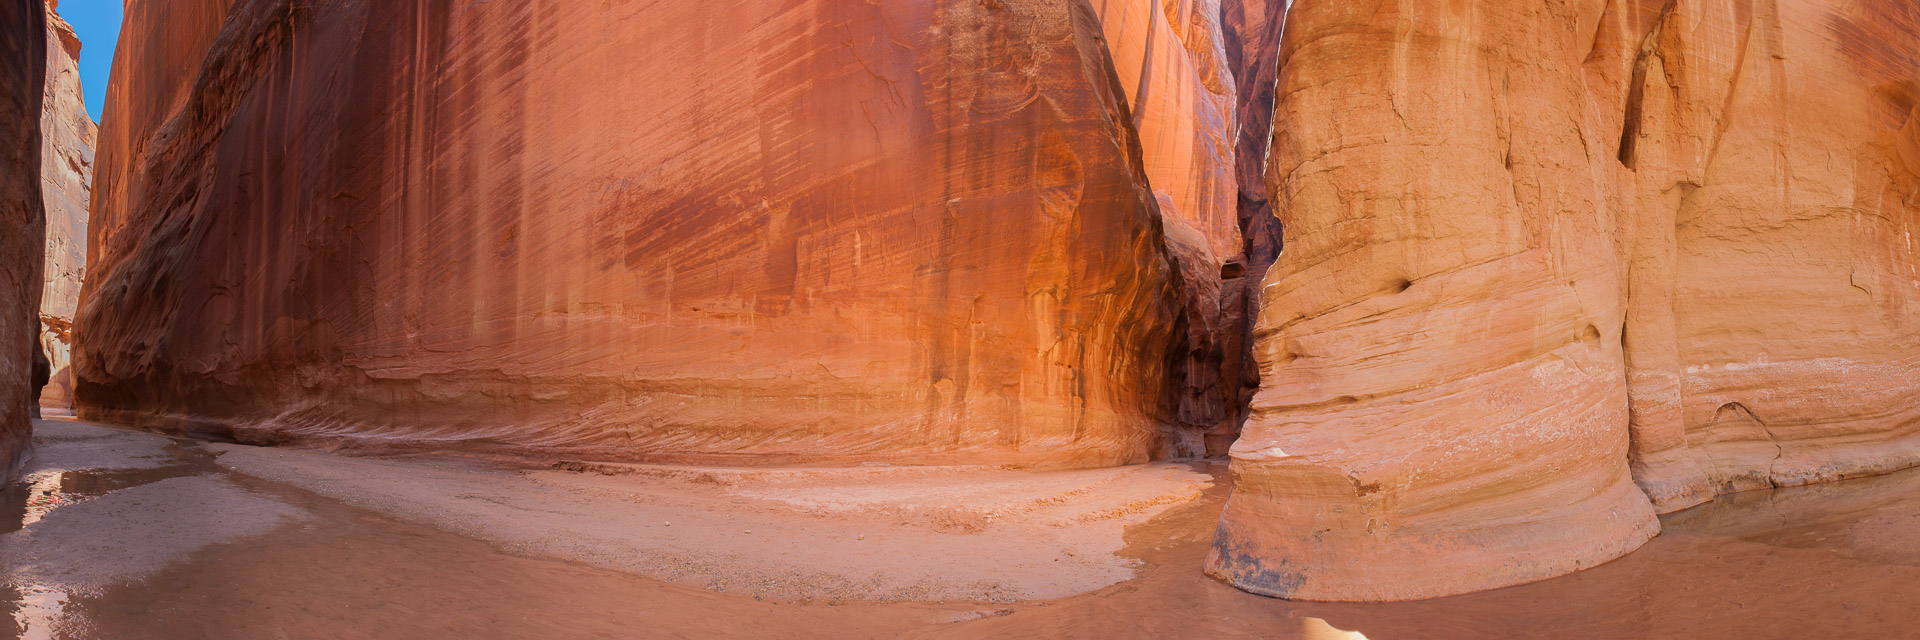 confluence of paria canyon and buckskin gulch